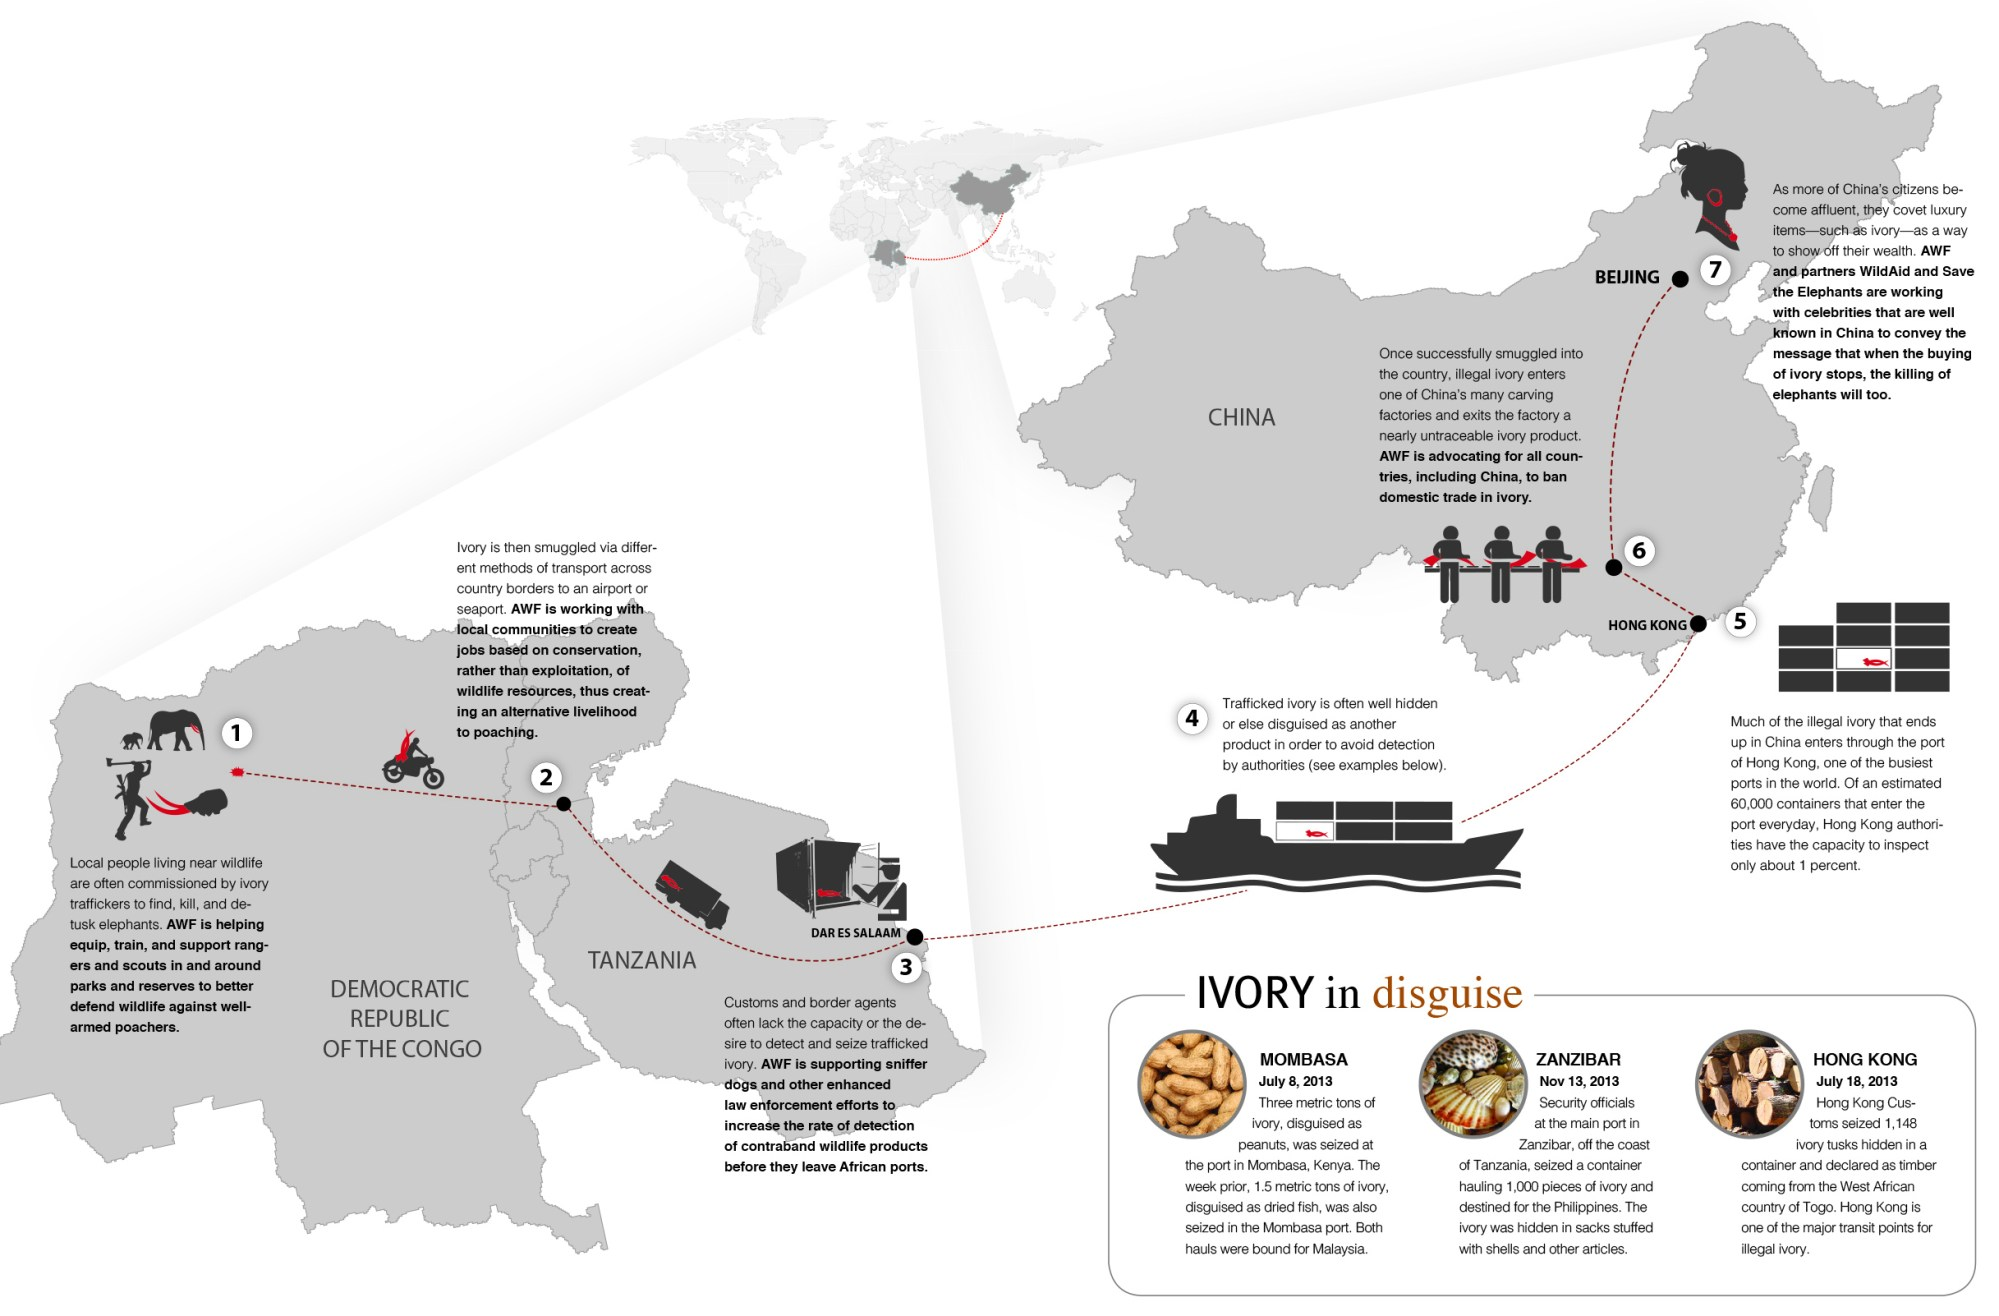 hight resolution of download the infographic to see the path of the ivory trade